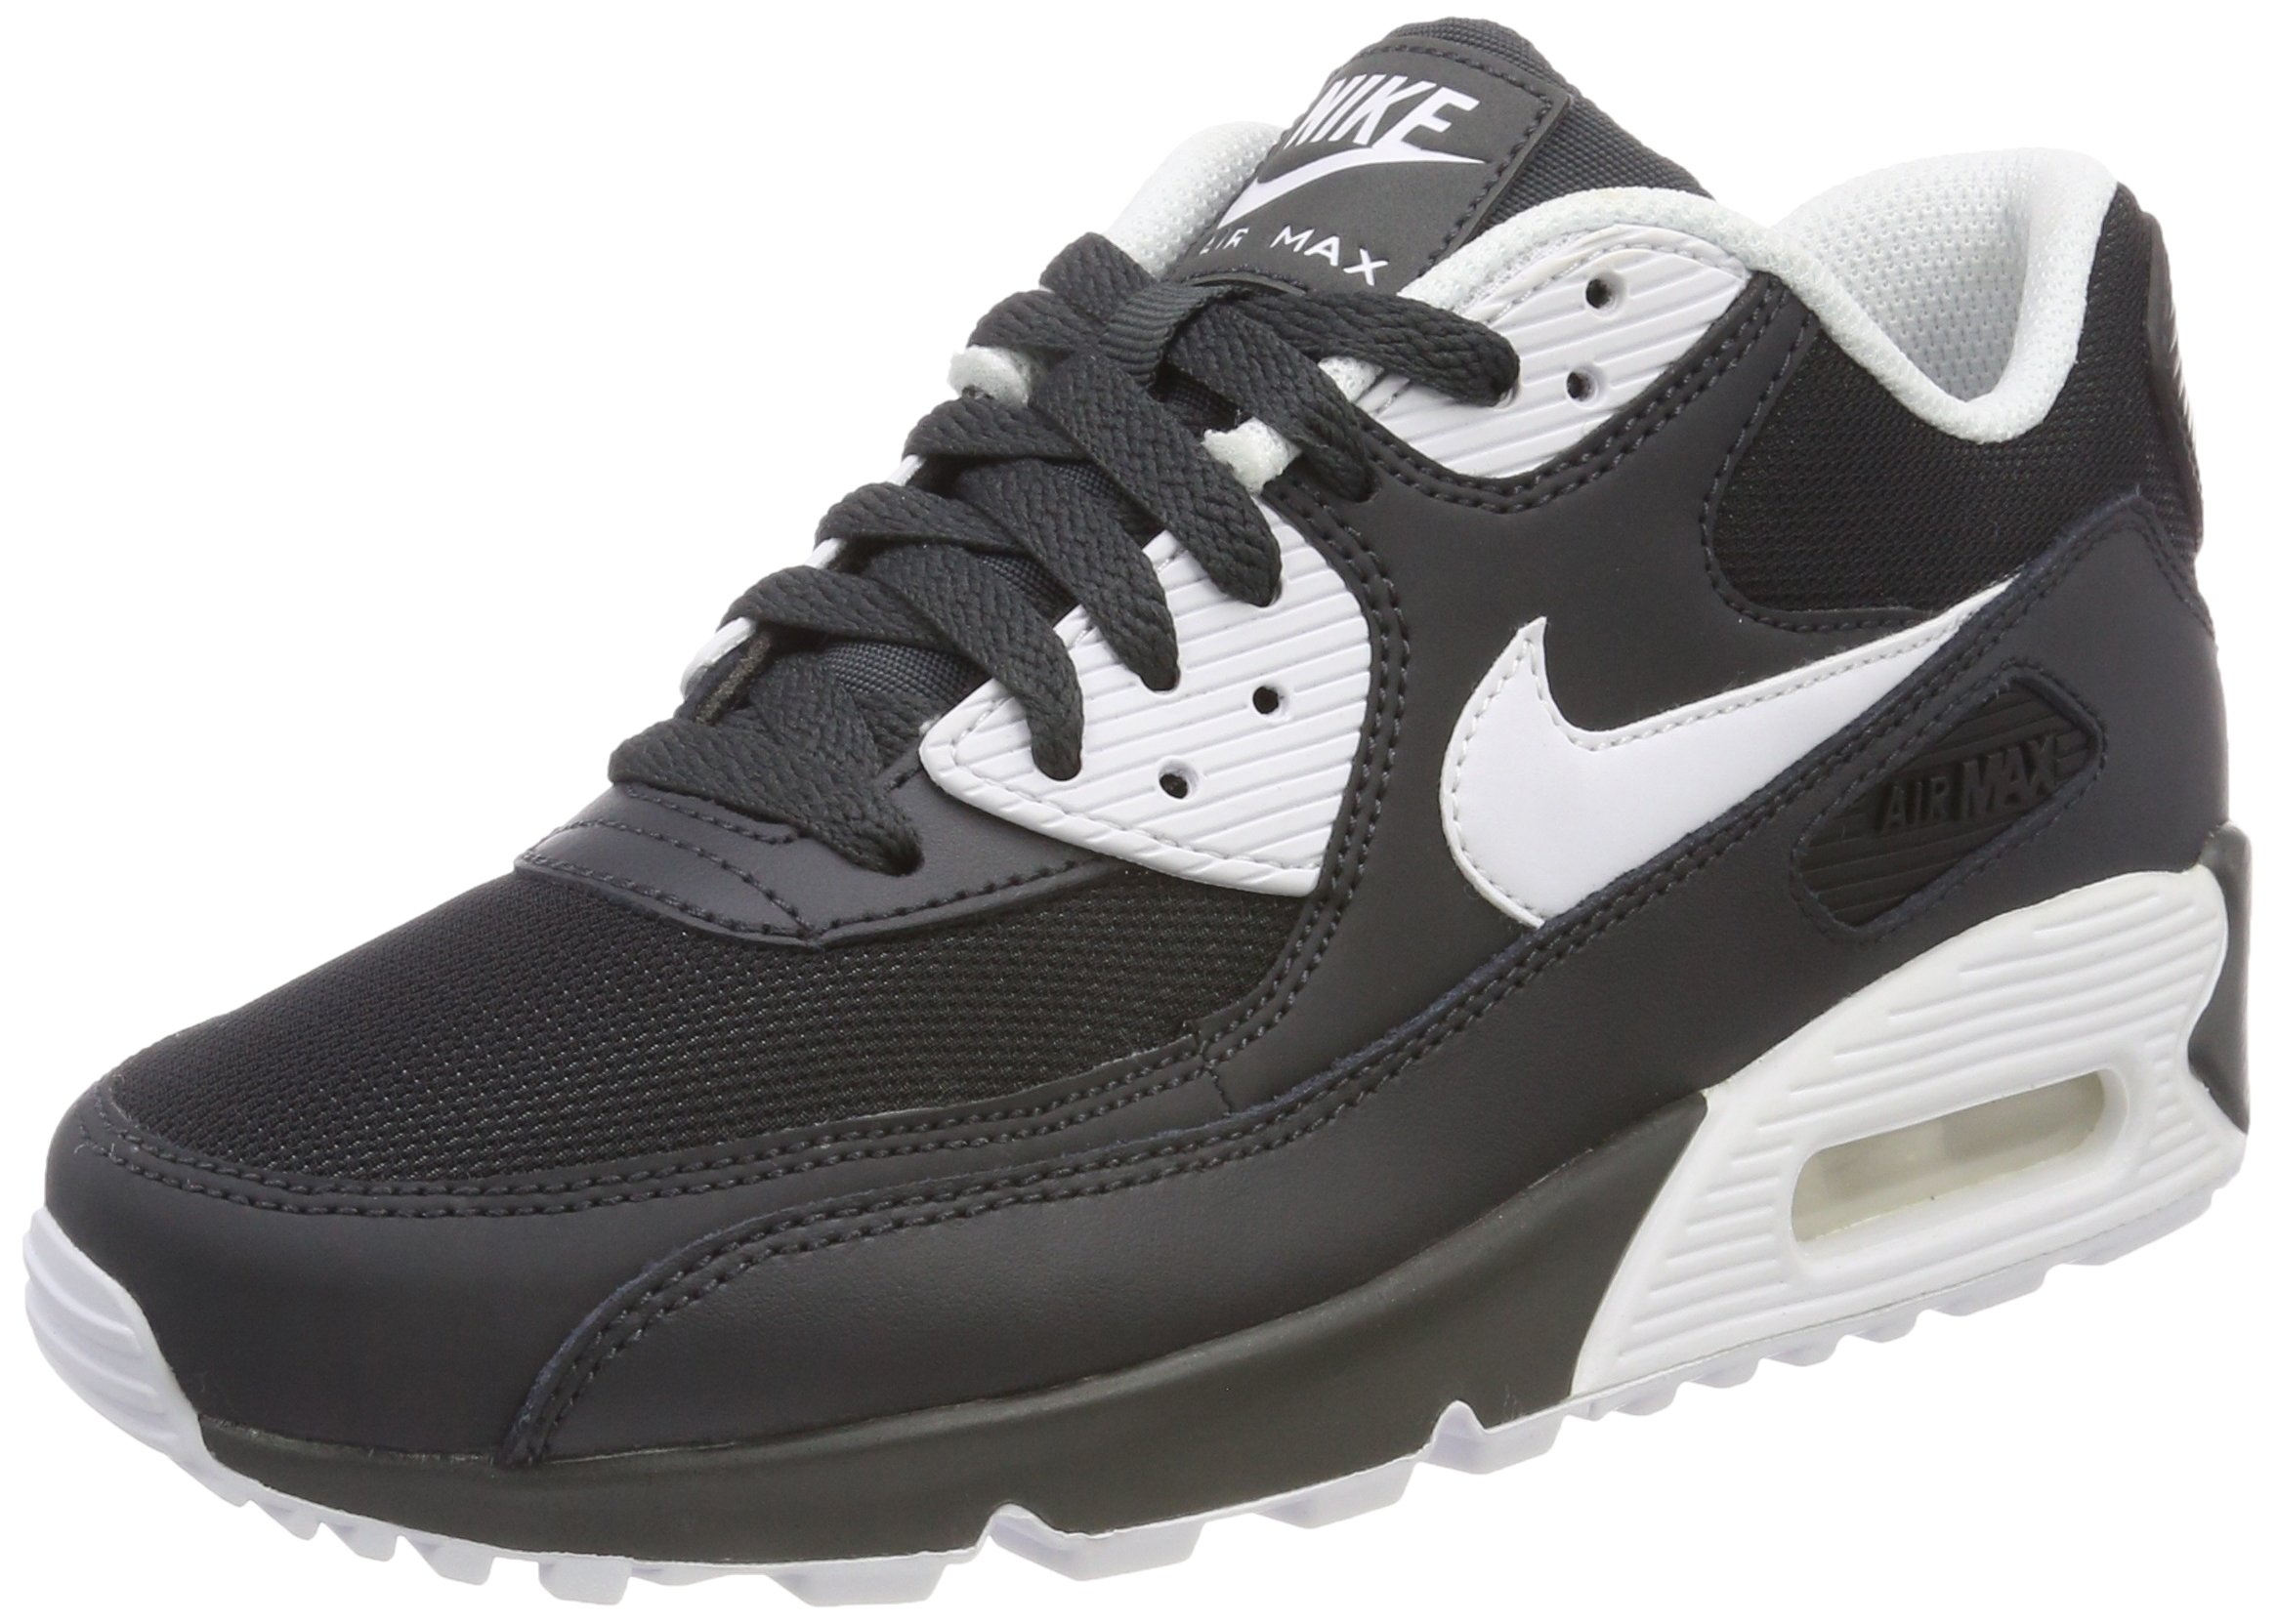 Nike Men's Air Max 90 Essential, AnthraciteWhite Black, 10 M US